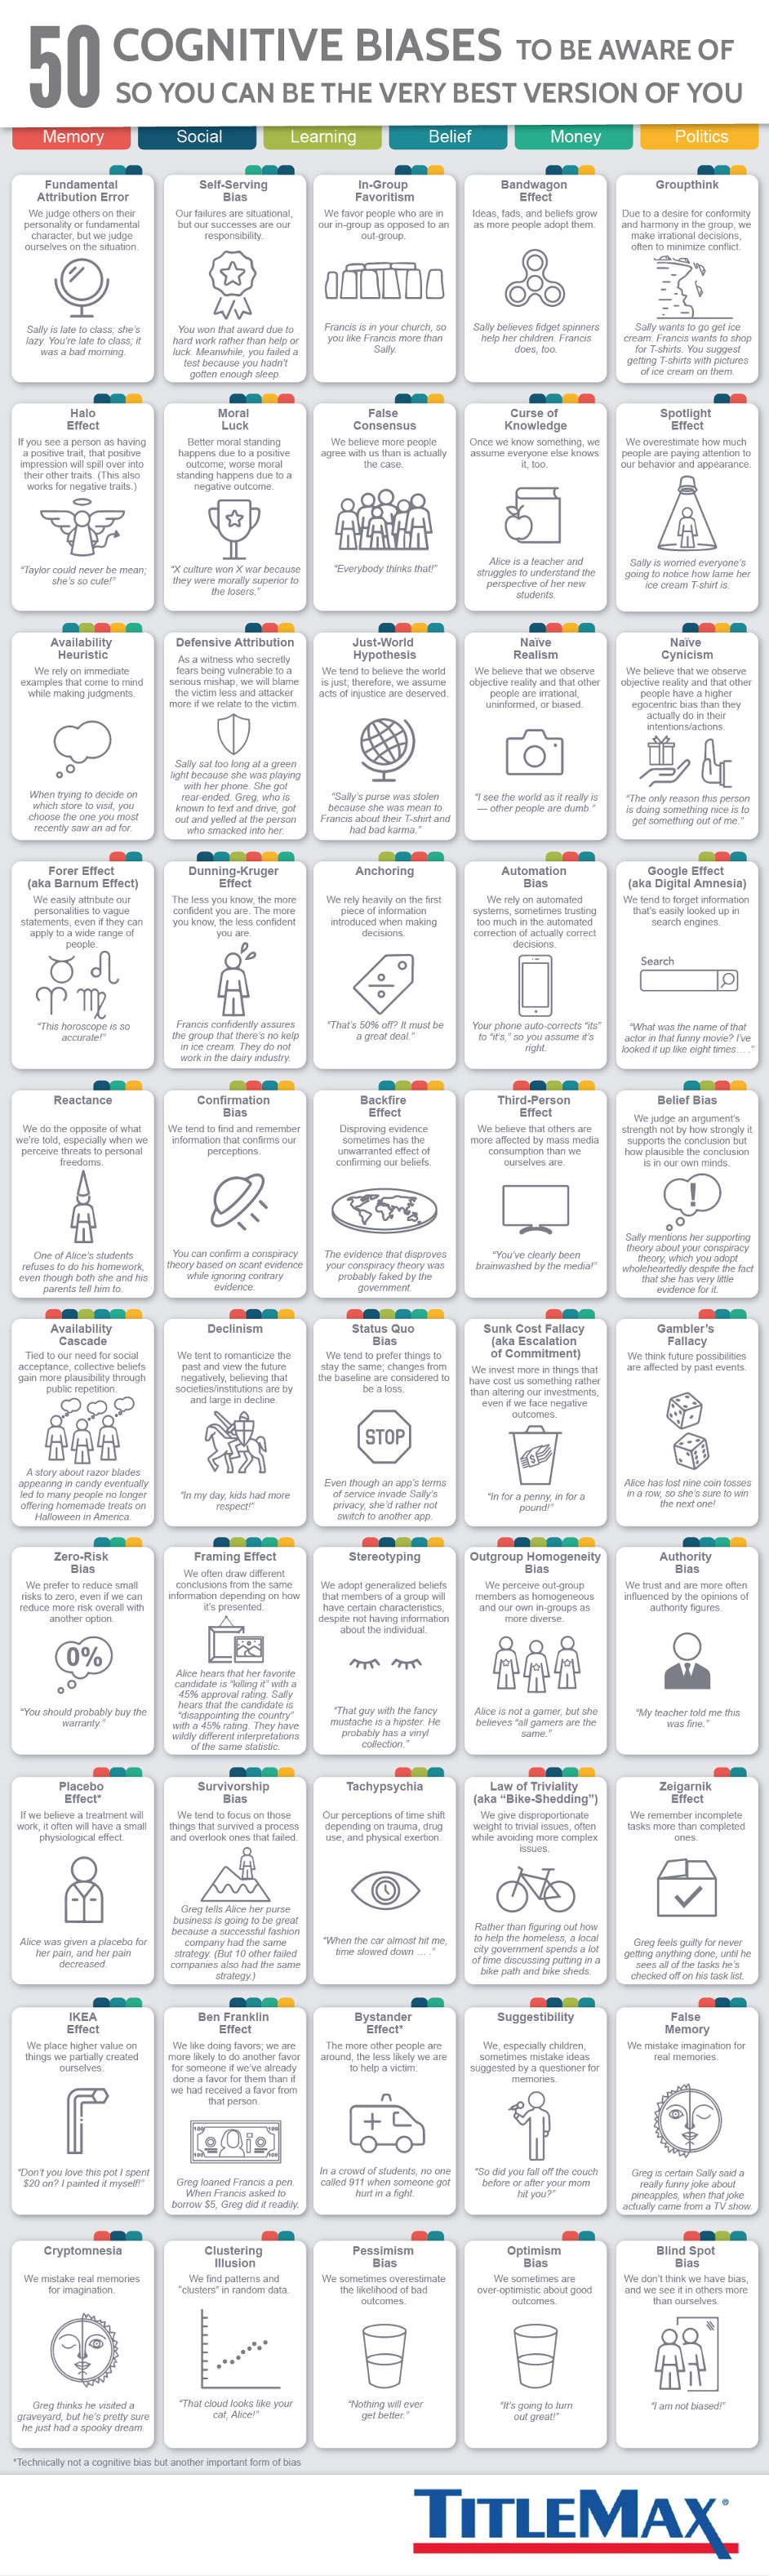 50 Cognitive Biases To Be Aware of To Be a Better Communicator